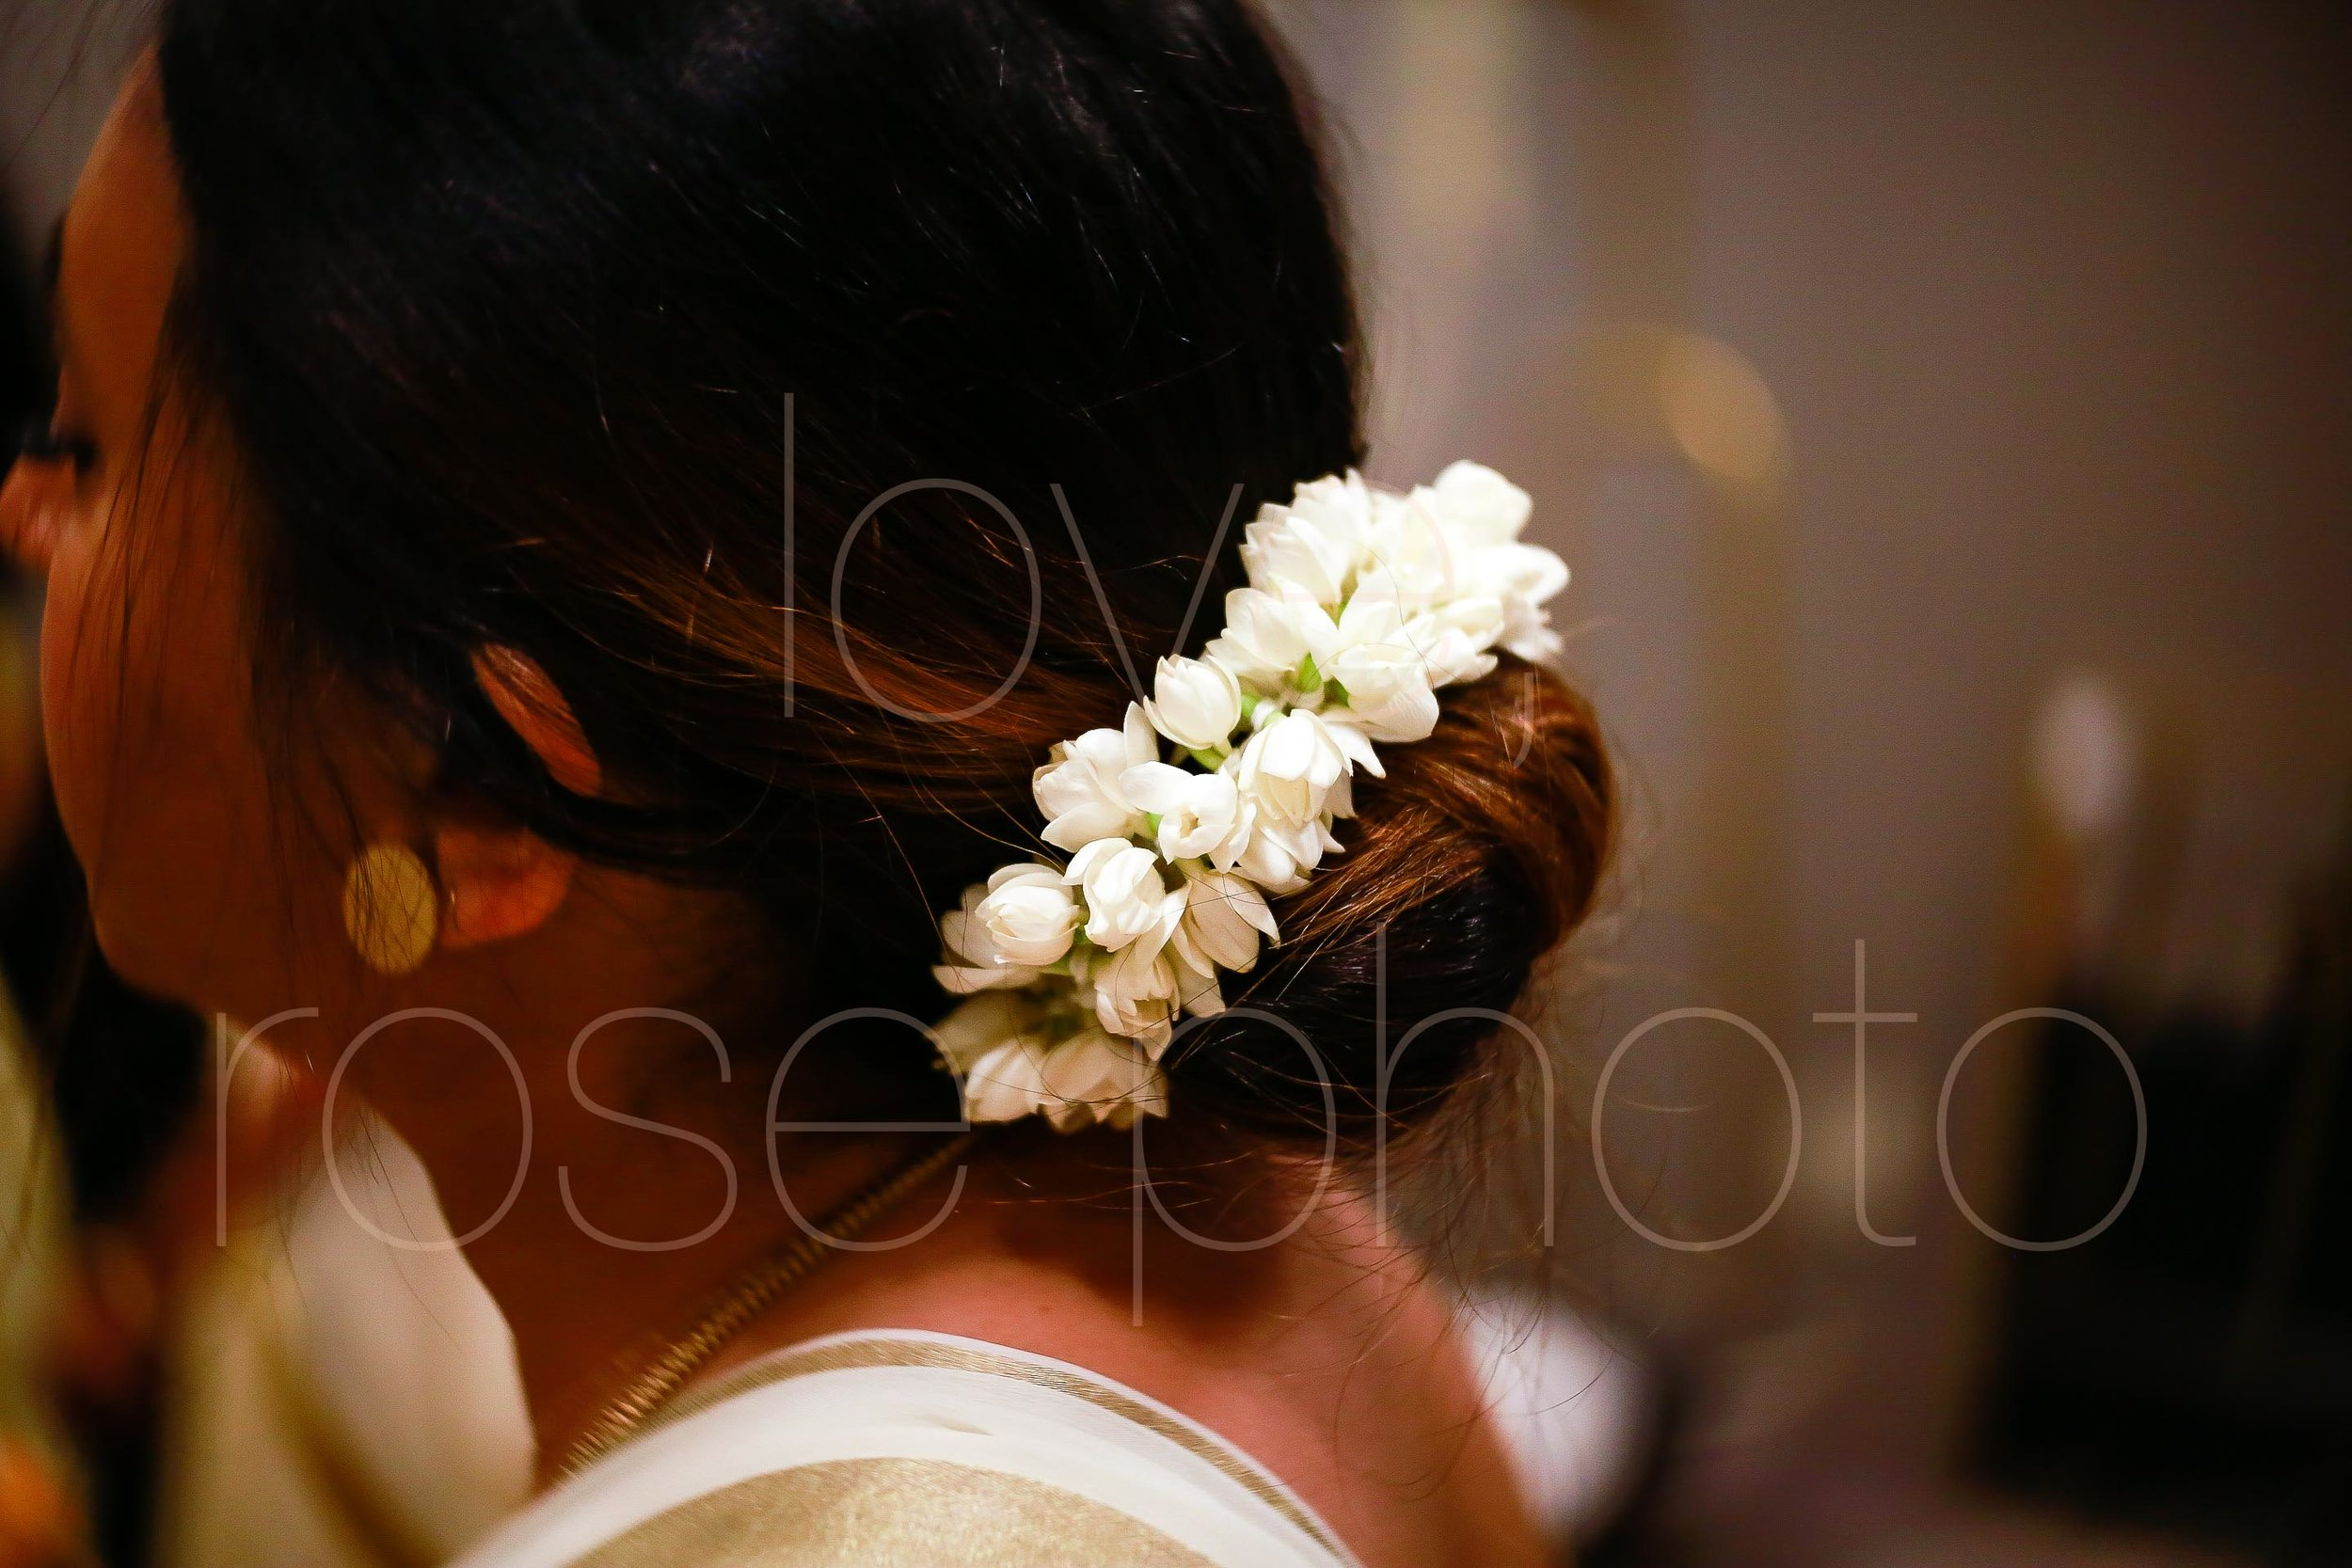 best chicago indian wedding photographer rose photo video collective-46.jpg